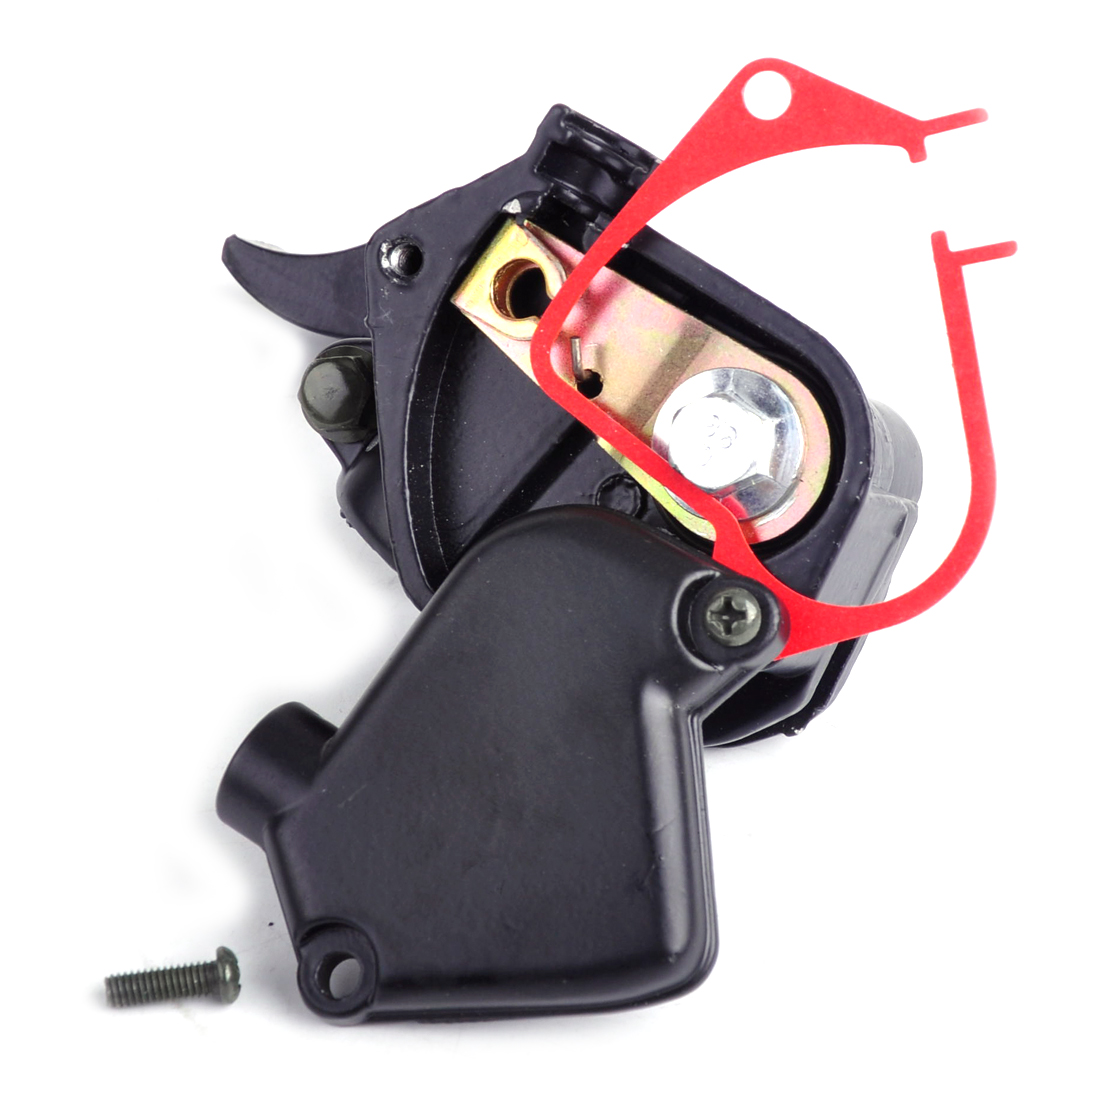 Back To Search Resultsautomobiles & Motorcycles Dwcx Black Metal Thumb Accelerator Lever Controller Throttle Wire Cable Assembly For Honda Atv 50cc 110cc 150cc Taotao Lifan Atv Parts & Accessories